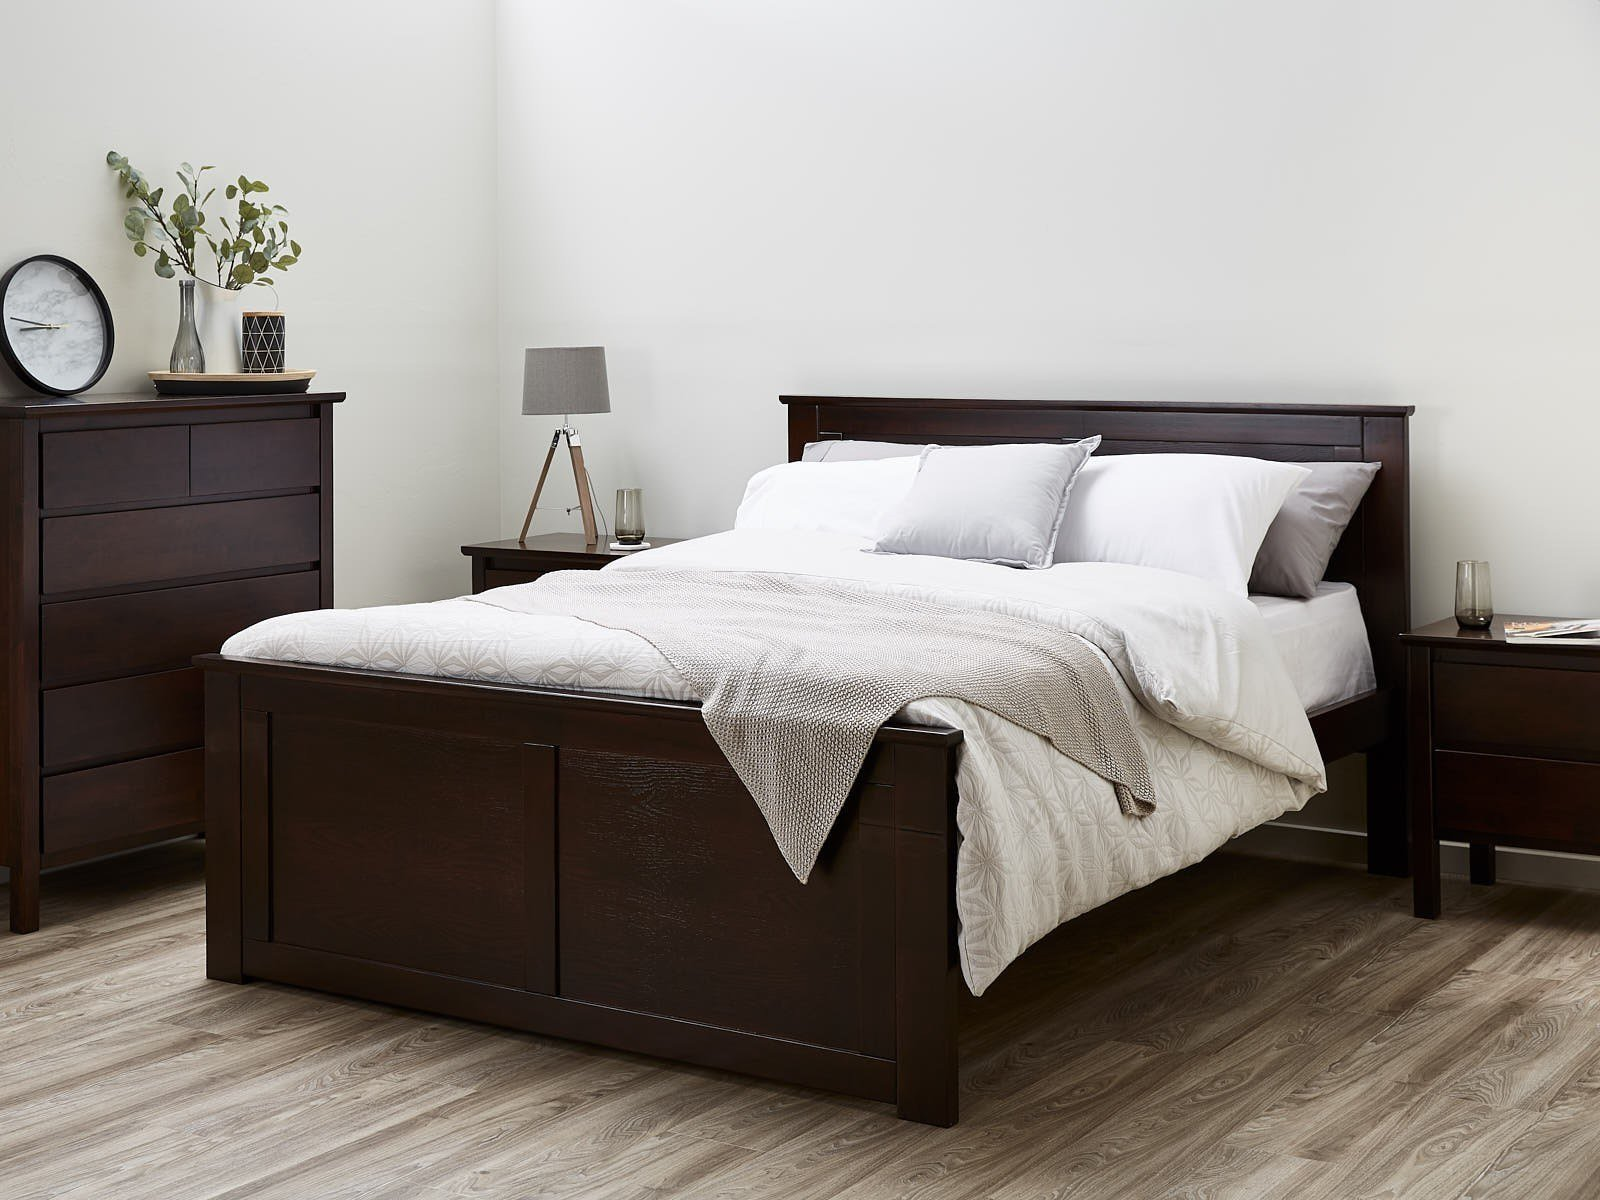 Best Queen Size Bedroom Suites 50 75 Off Sale Built With With Pictures